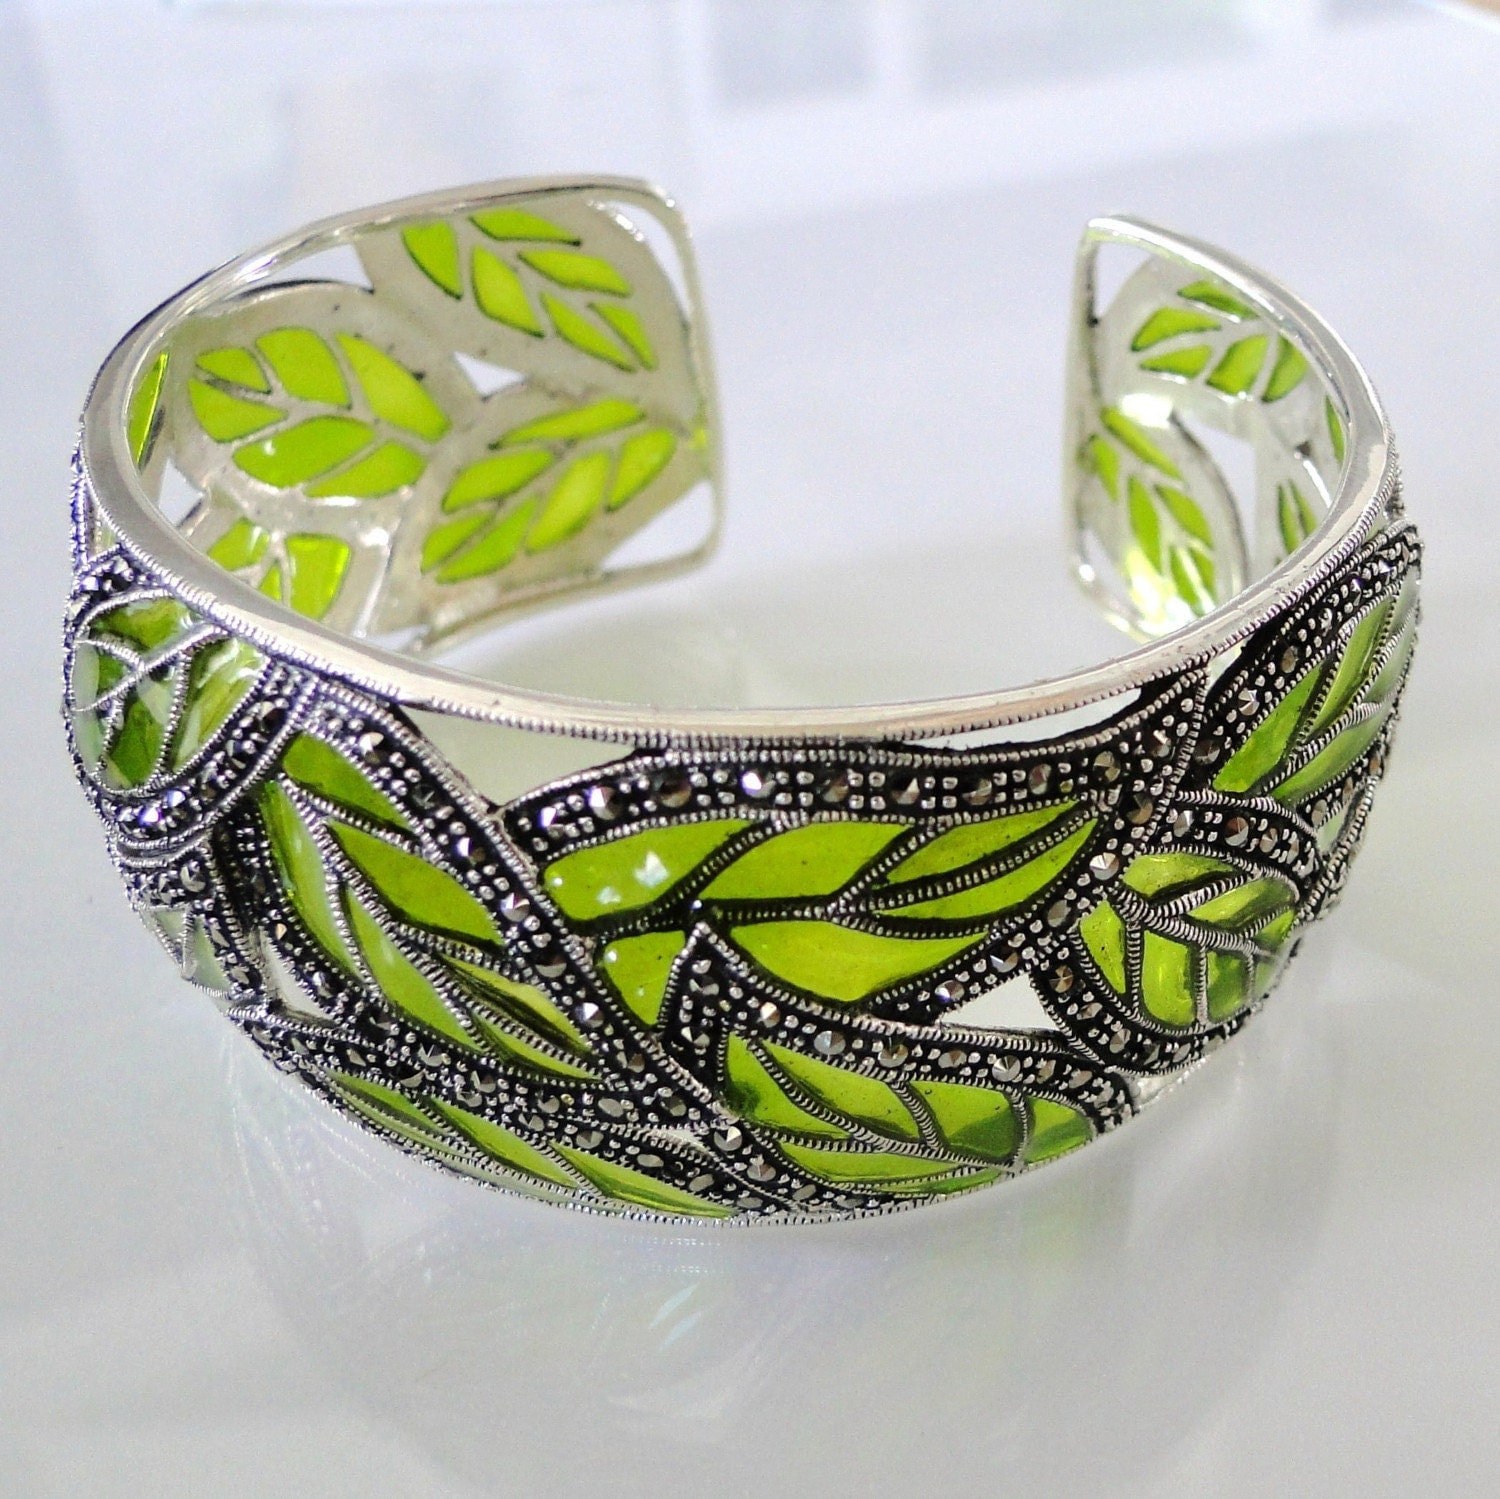 Falling Leaves - Stunning Marcasite, Sterling Silver, and Resin Cuff Bracelet